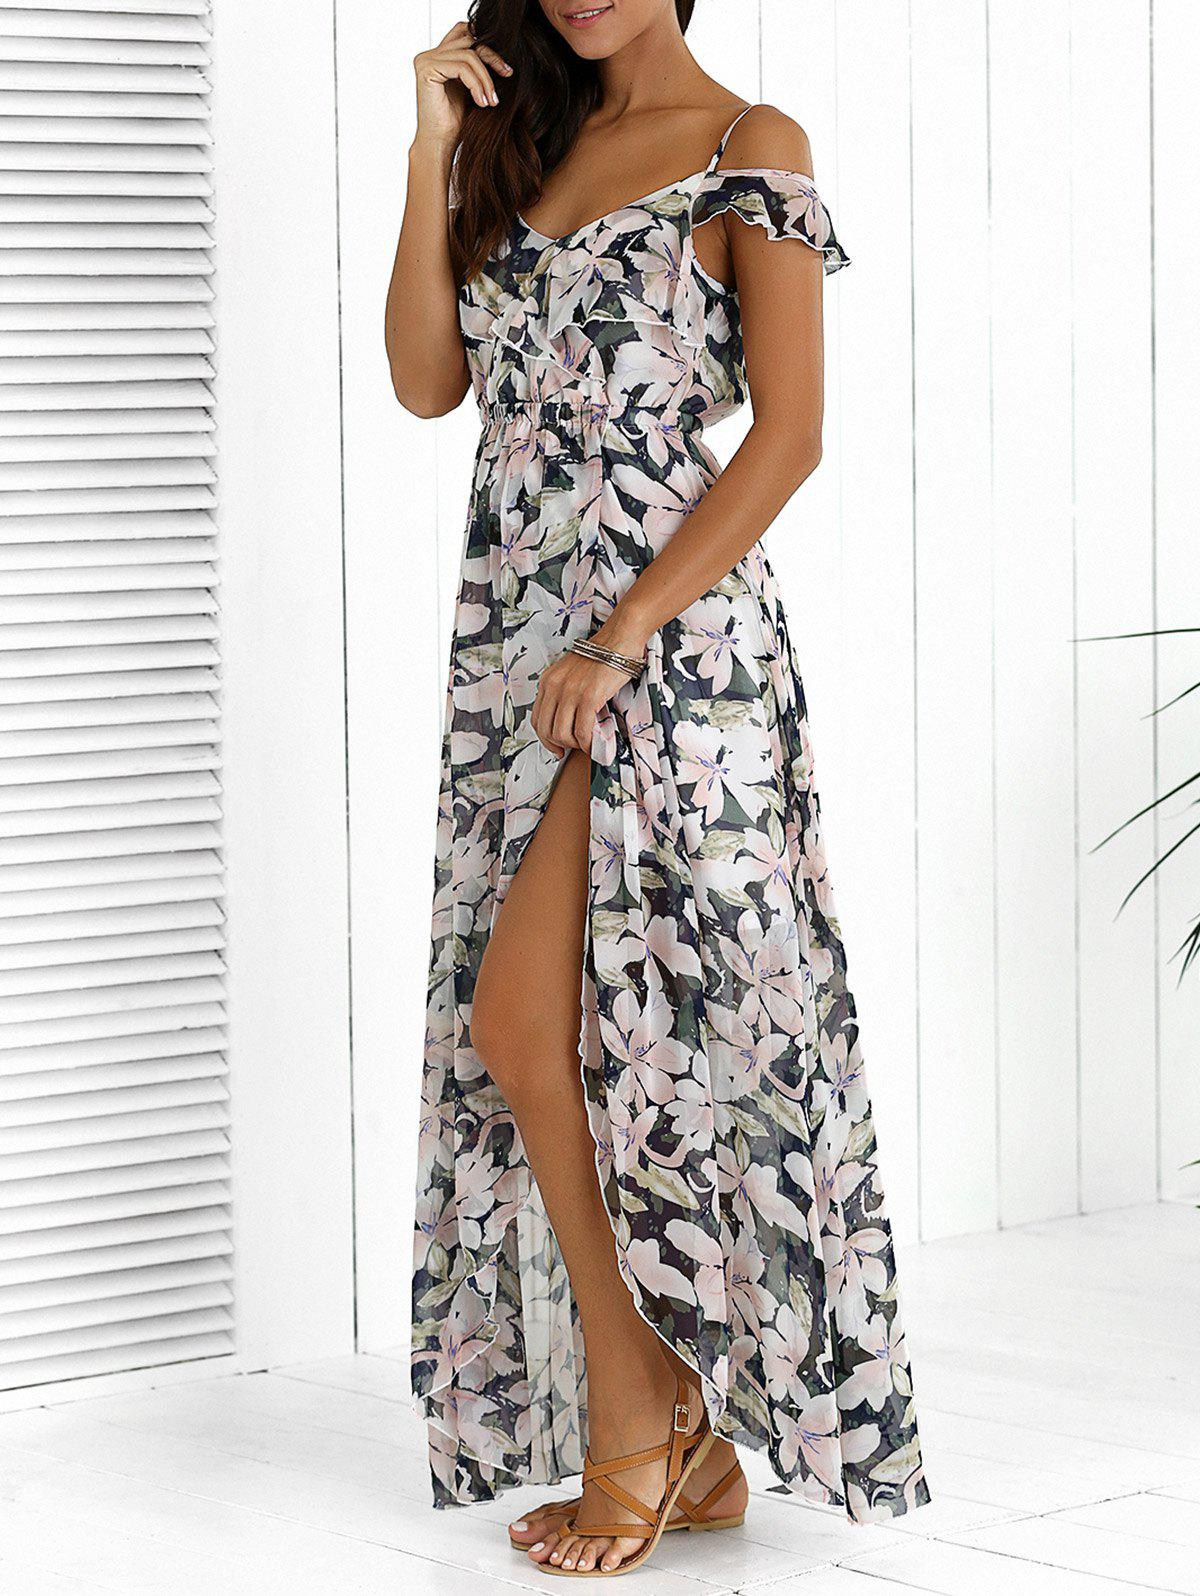 Asymmetric High Slit Floral Print Maxi Dress - COLORMIX XL